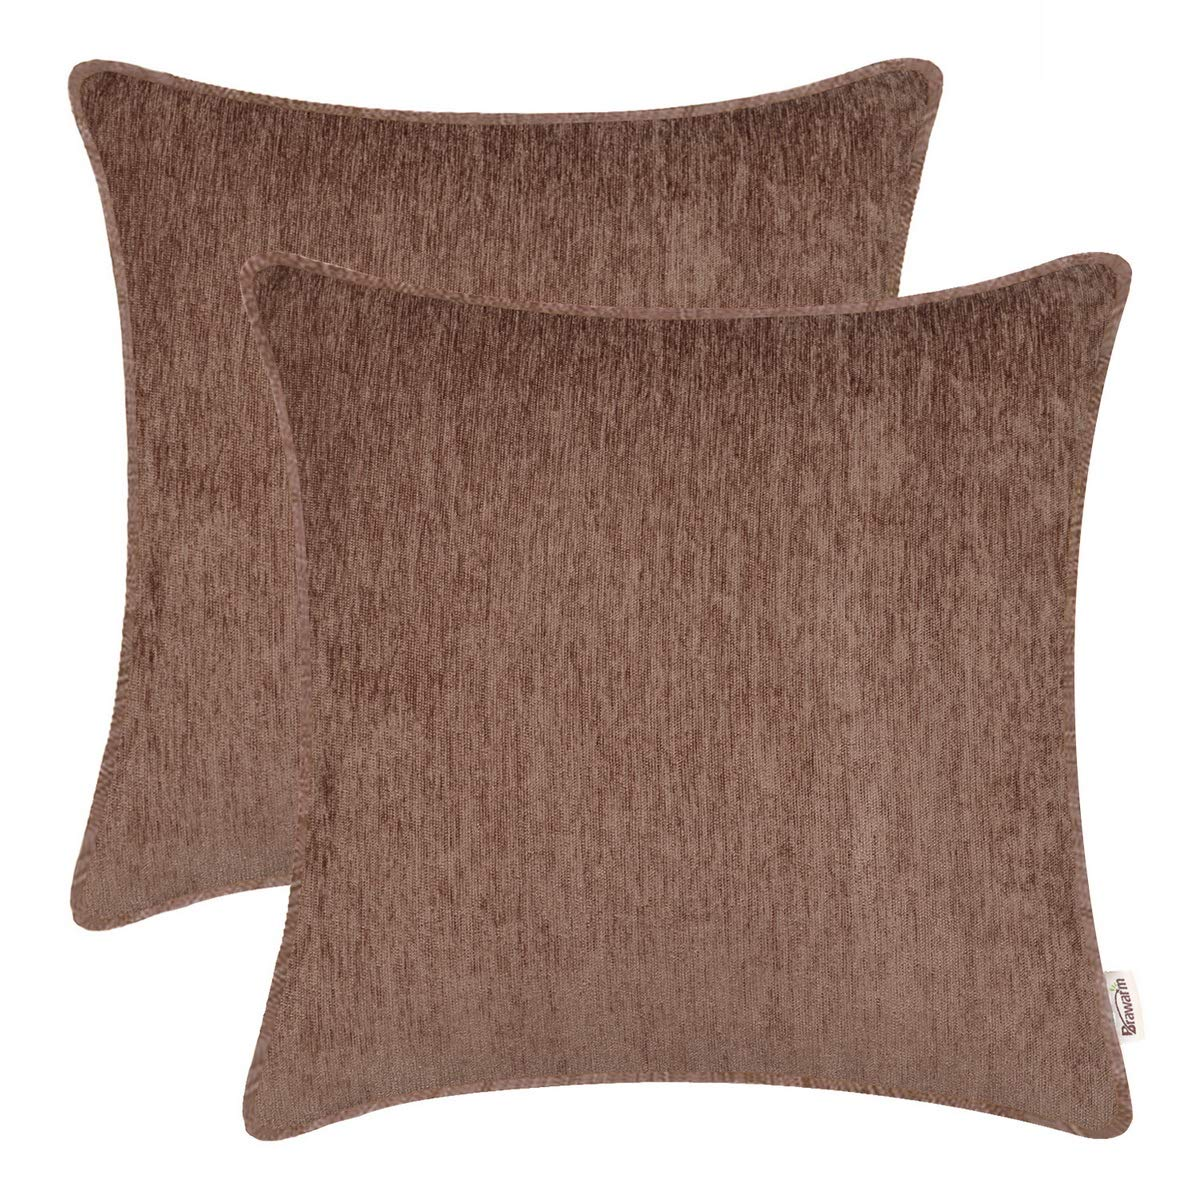 BRAWARM Pack of 2 Cozy Throw Pillow Covers Cases for Sofa Couch Home Decoration Solid Dyed Striped Soft Chenille with Piping 20 X 20 Inches Light Taupe